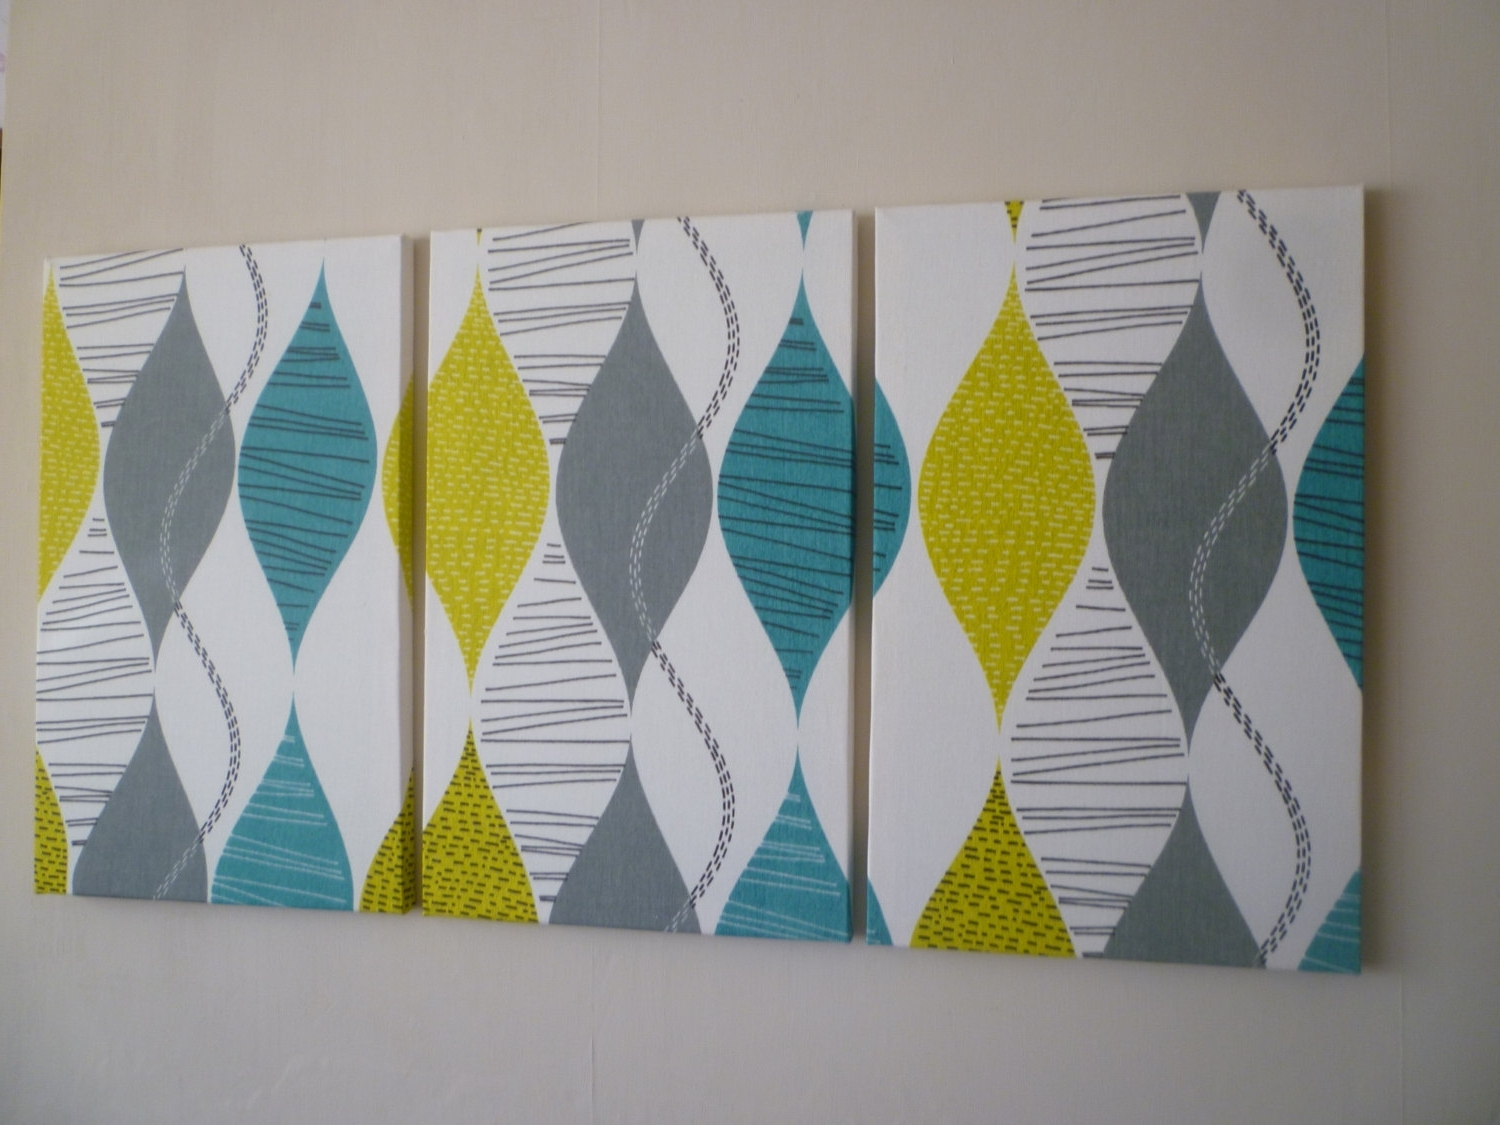 Big Fabric Wall Art Teal Lime Green Triptych 3 Piece Modern With Favorite Modern Fabric Wall Art (View 8 of 15)